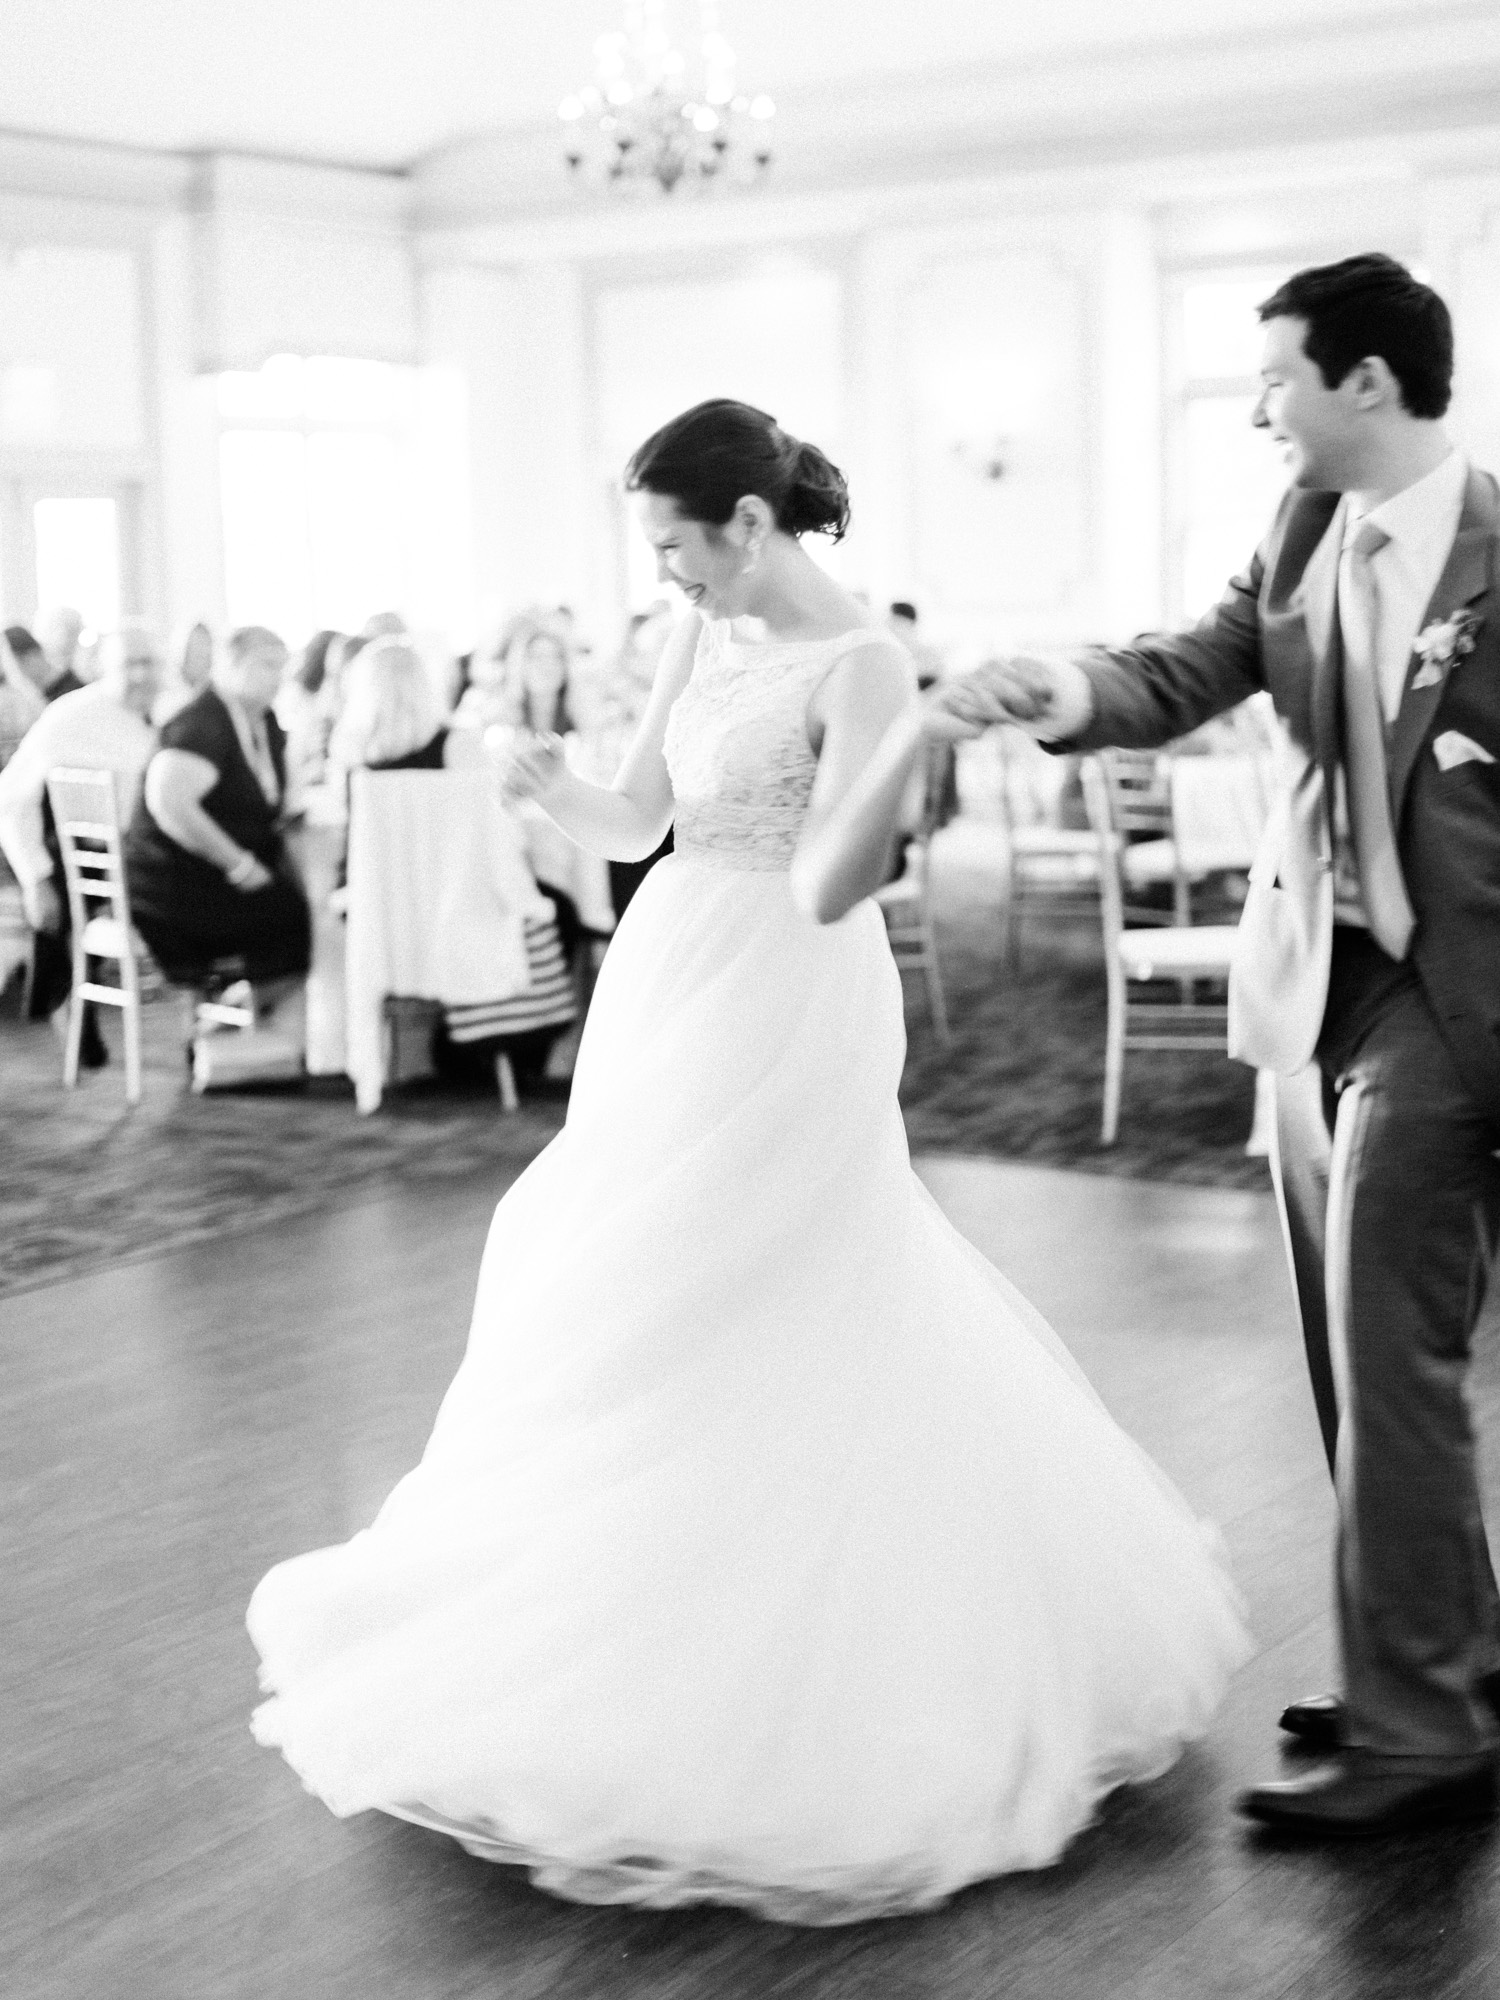 A groom twirls his bride on the dance floor at The Polo Fields in Ann Arbor